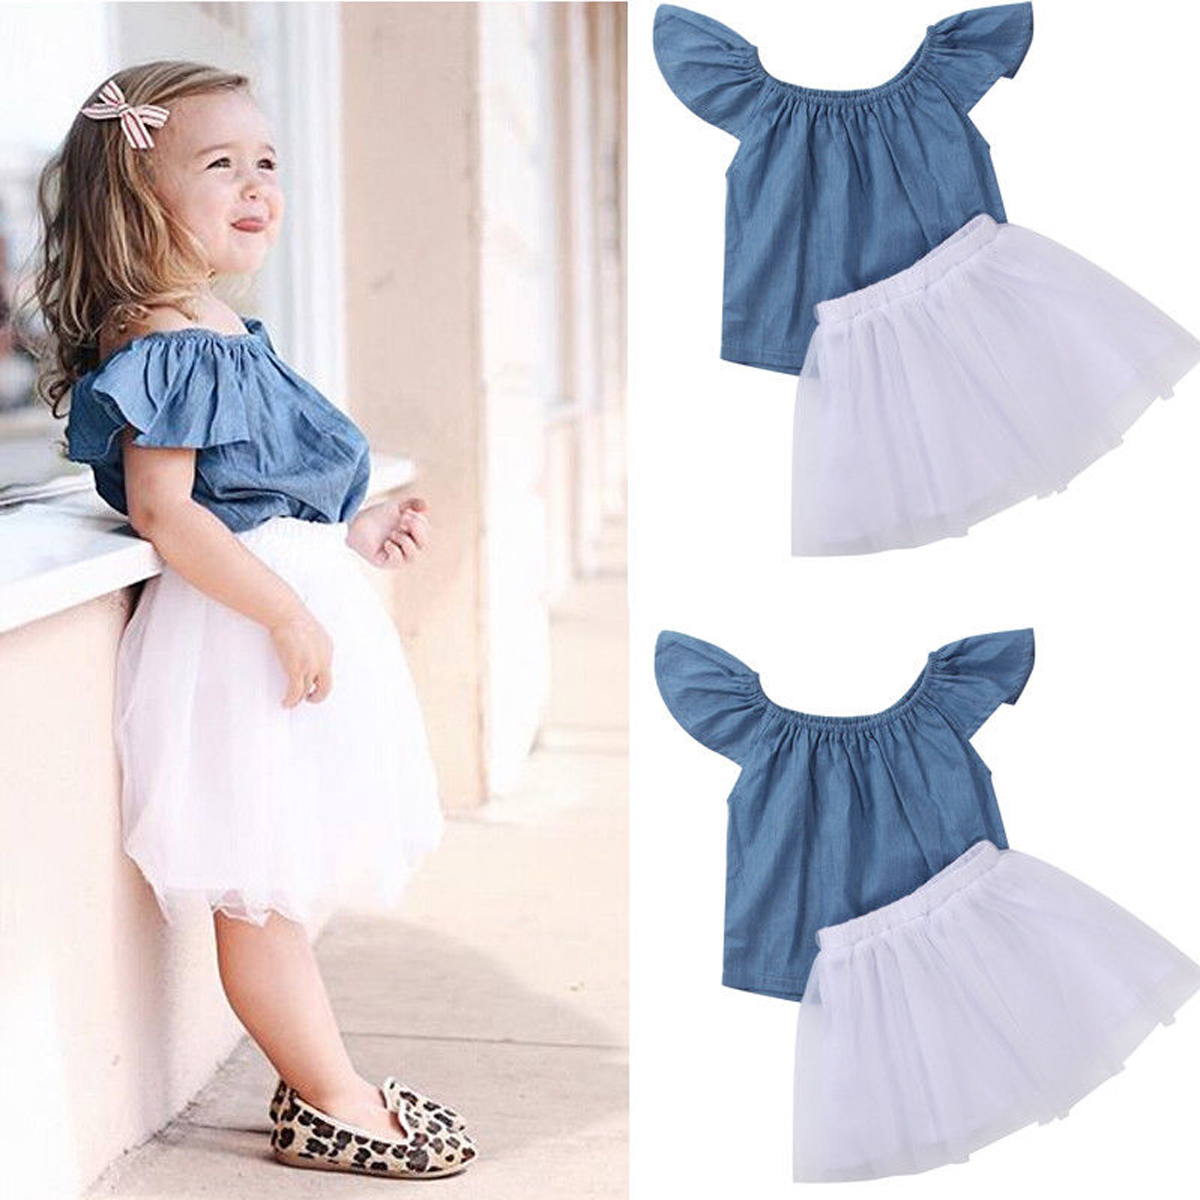 cbd40f0d8b00 Toddler Kids Baby Girls Short Sleeve T-shirt Top+Dress Skirt Outfits ...